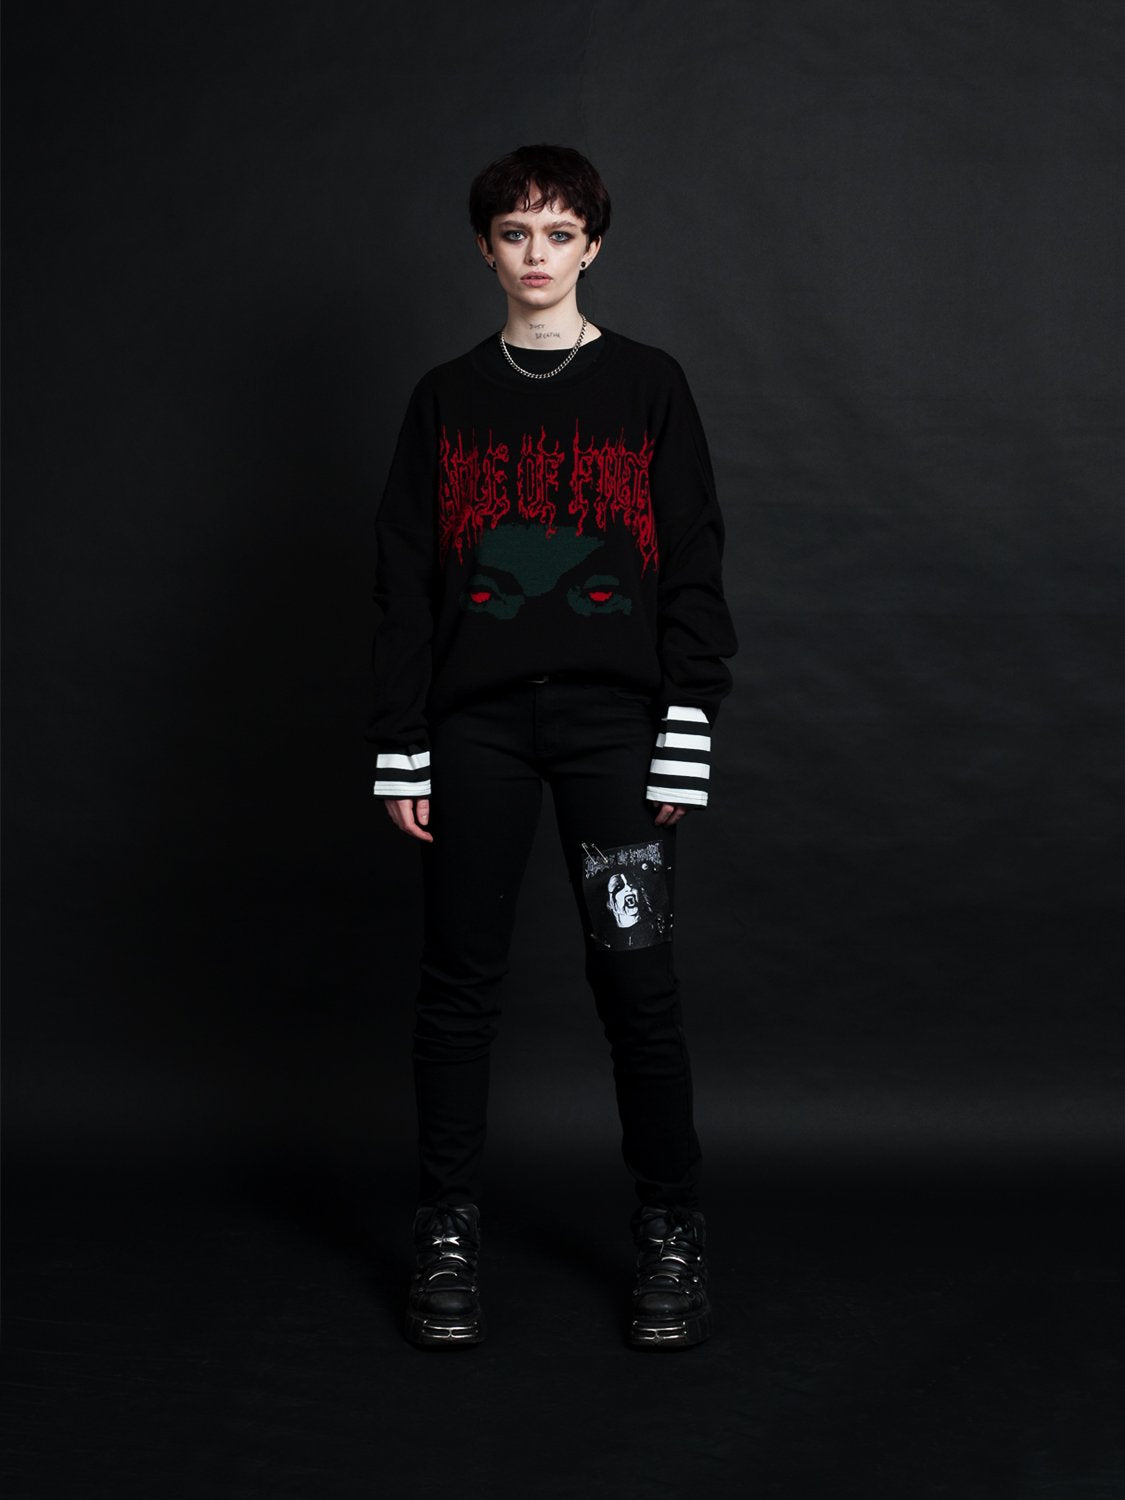 Drop Dead - Enslave - UNISEX: TOP